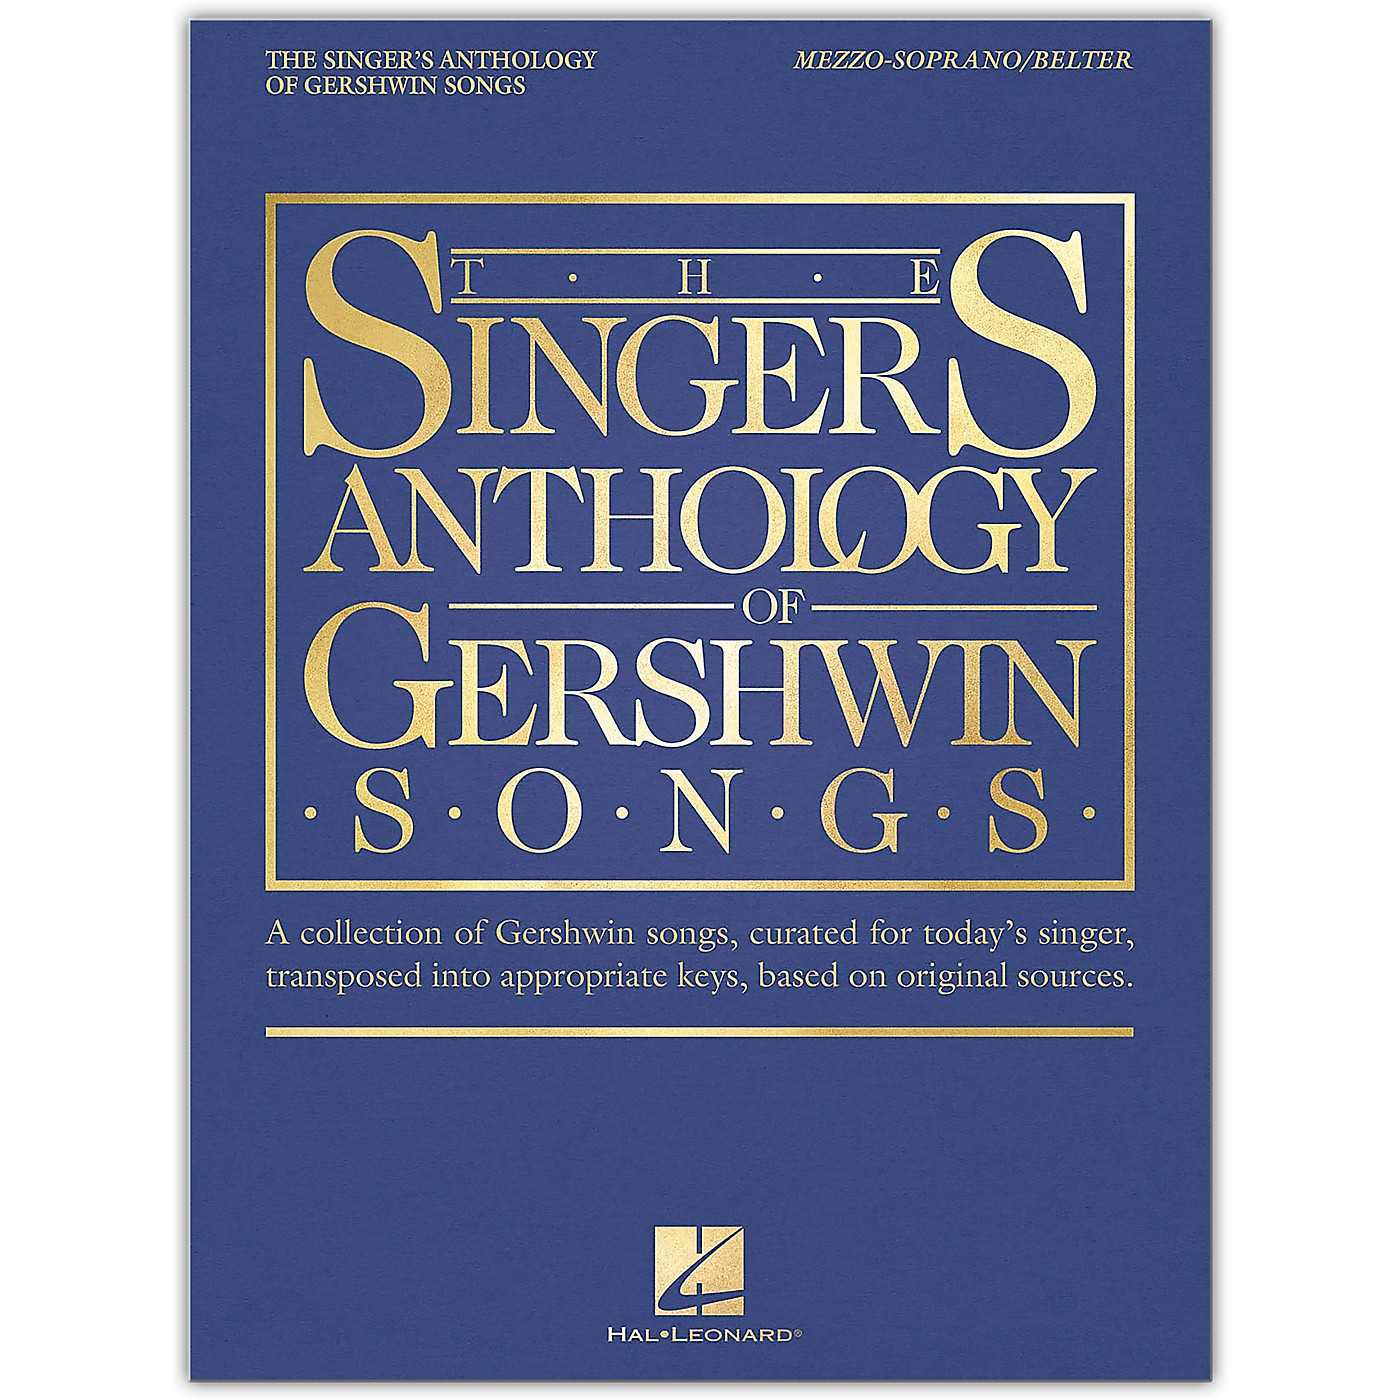 Hal Leonard The Singer's Anthology of Gershwin Songs - Mezzo-Soprano/Belter Vocal Collection thumbnail